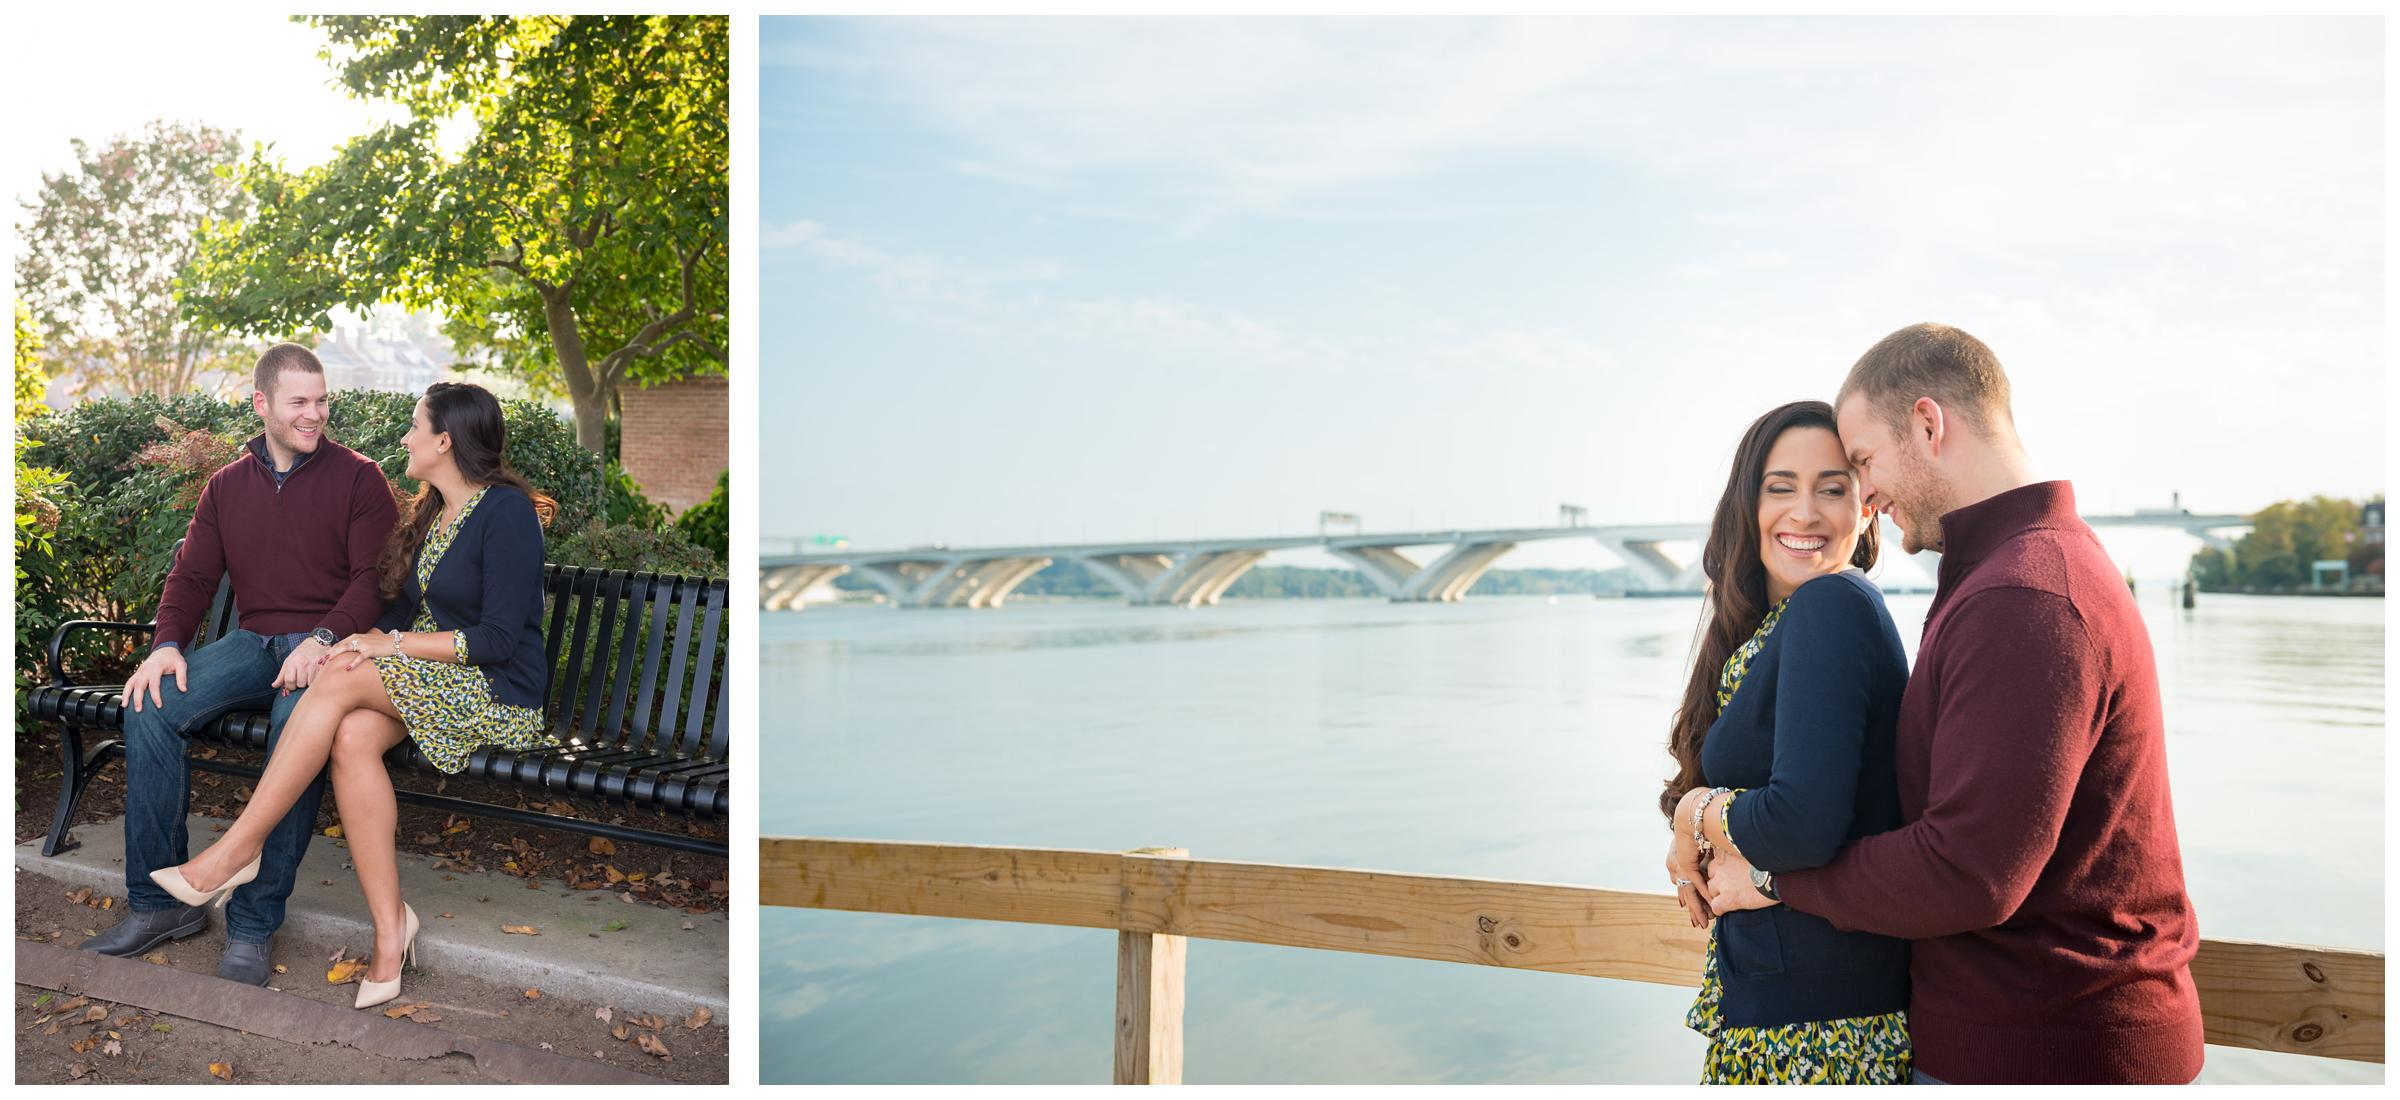 engaged couple on bench and along Potomac River with Woodrow Wilson Memorial Bridge in background